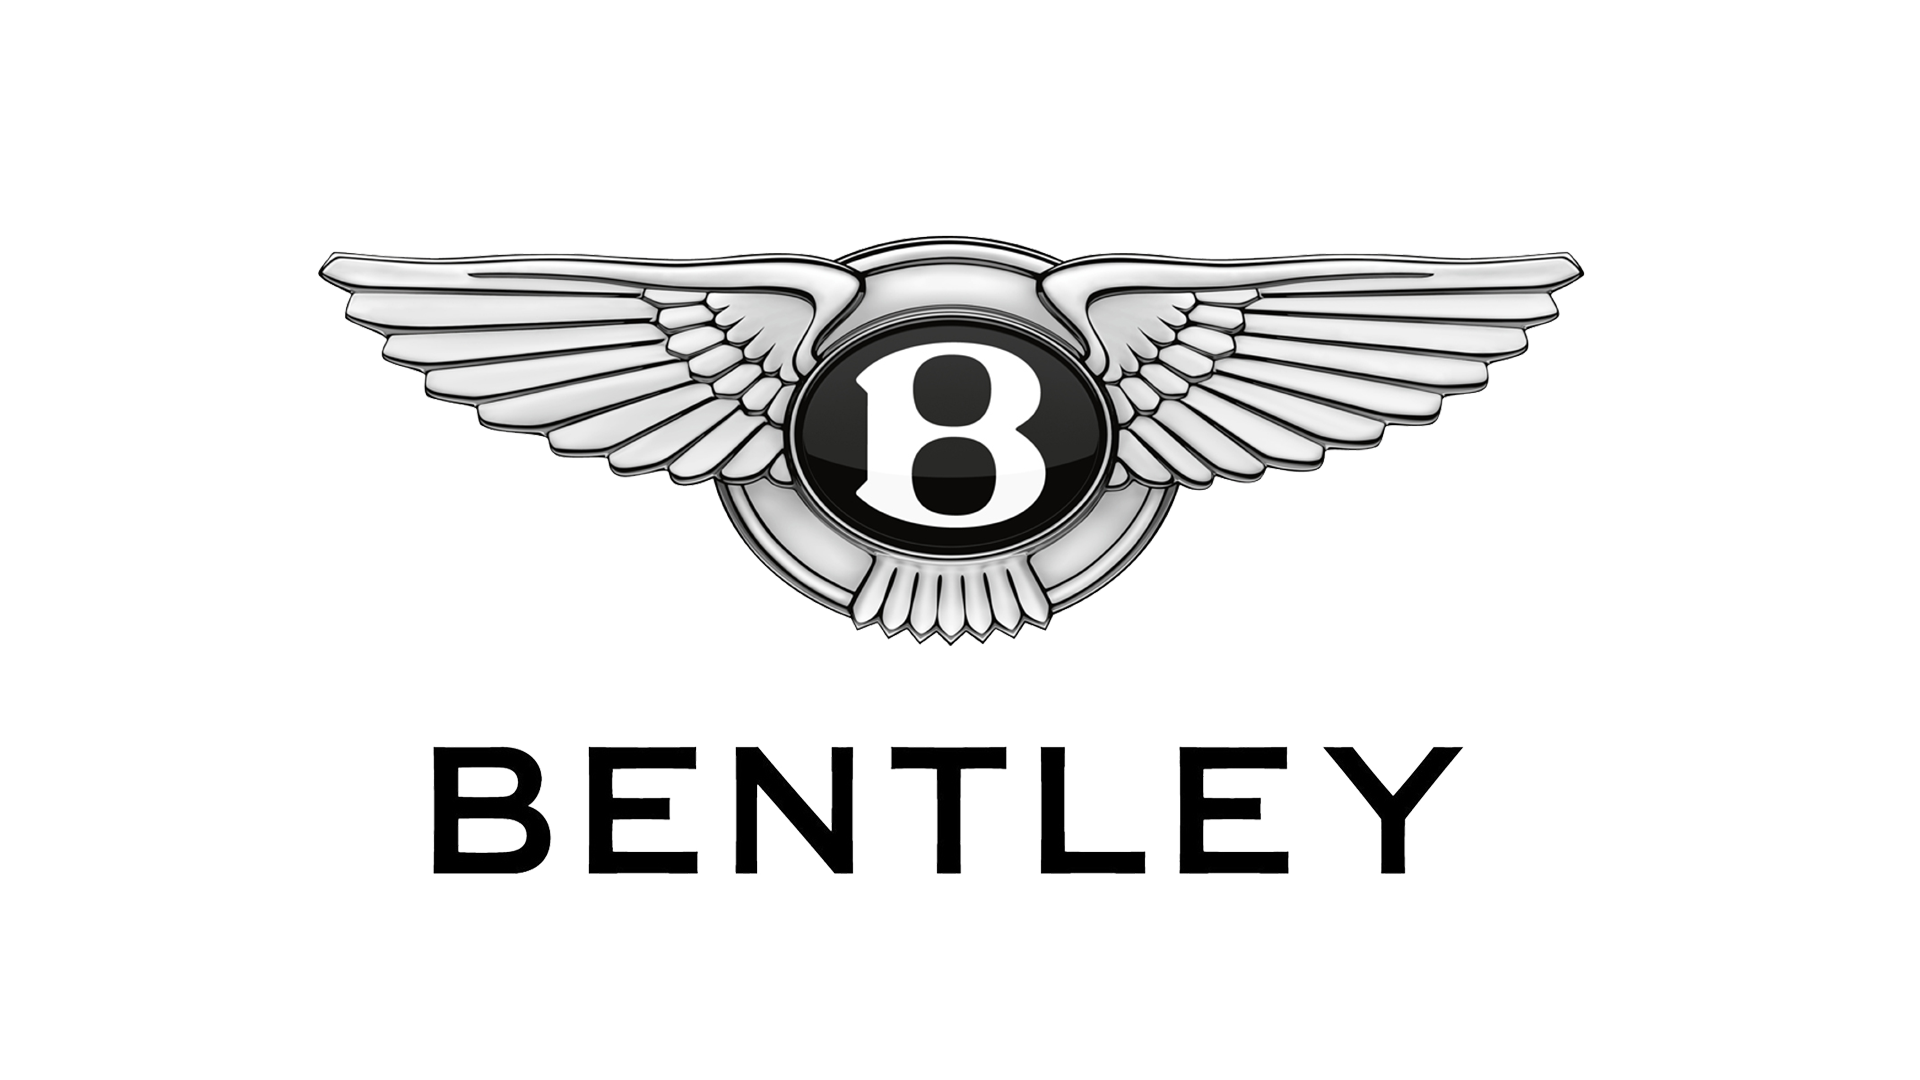 Bentley-logo-1920x1080.png